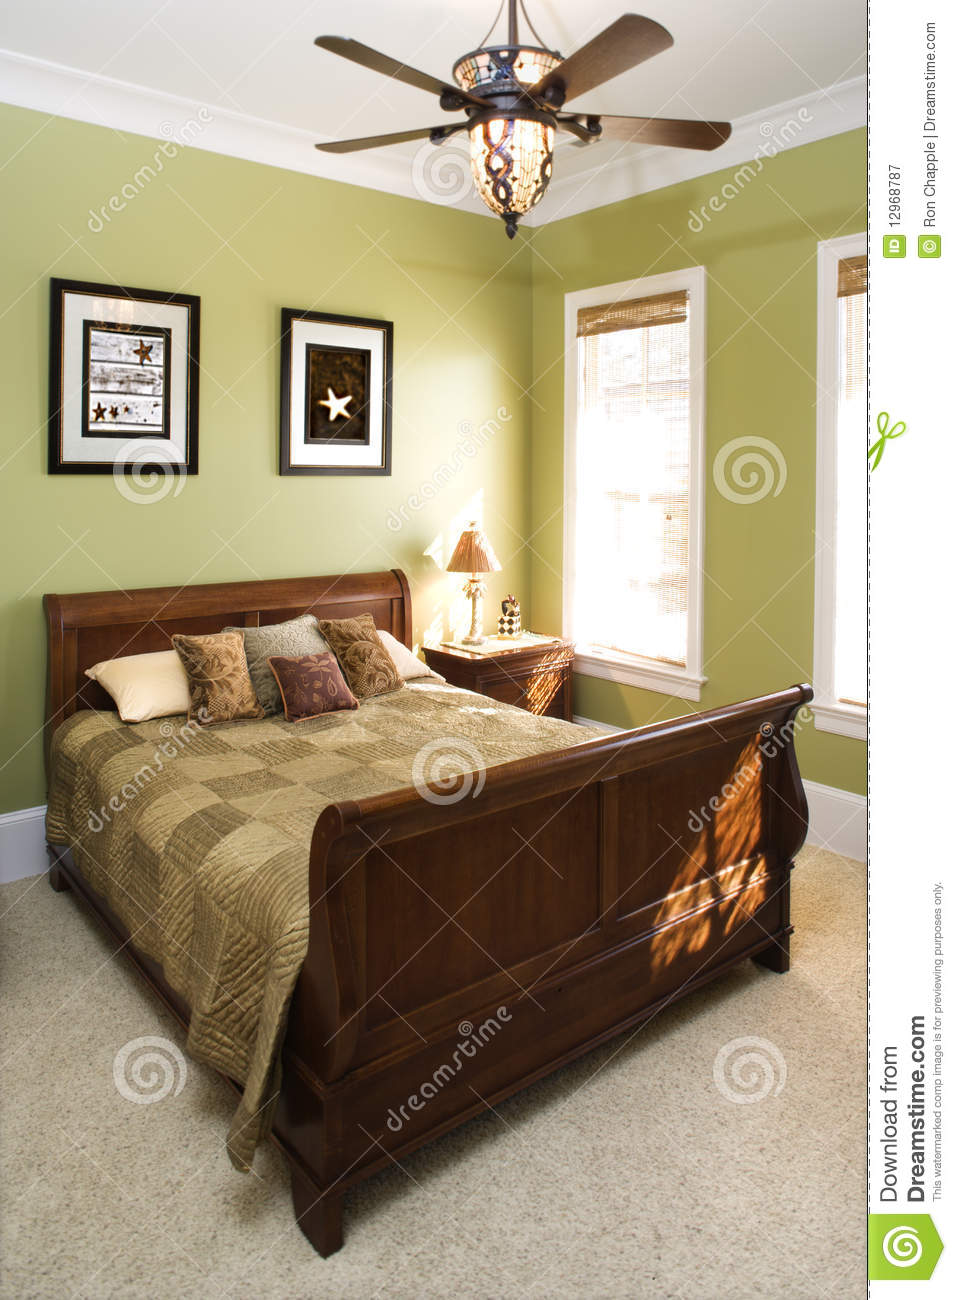 ceiling fans for bedrooms green bedroom with ceiling fan royalty free stock 14710